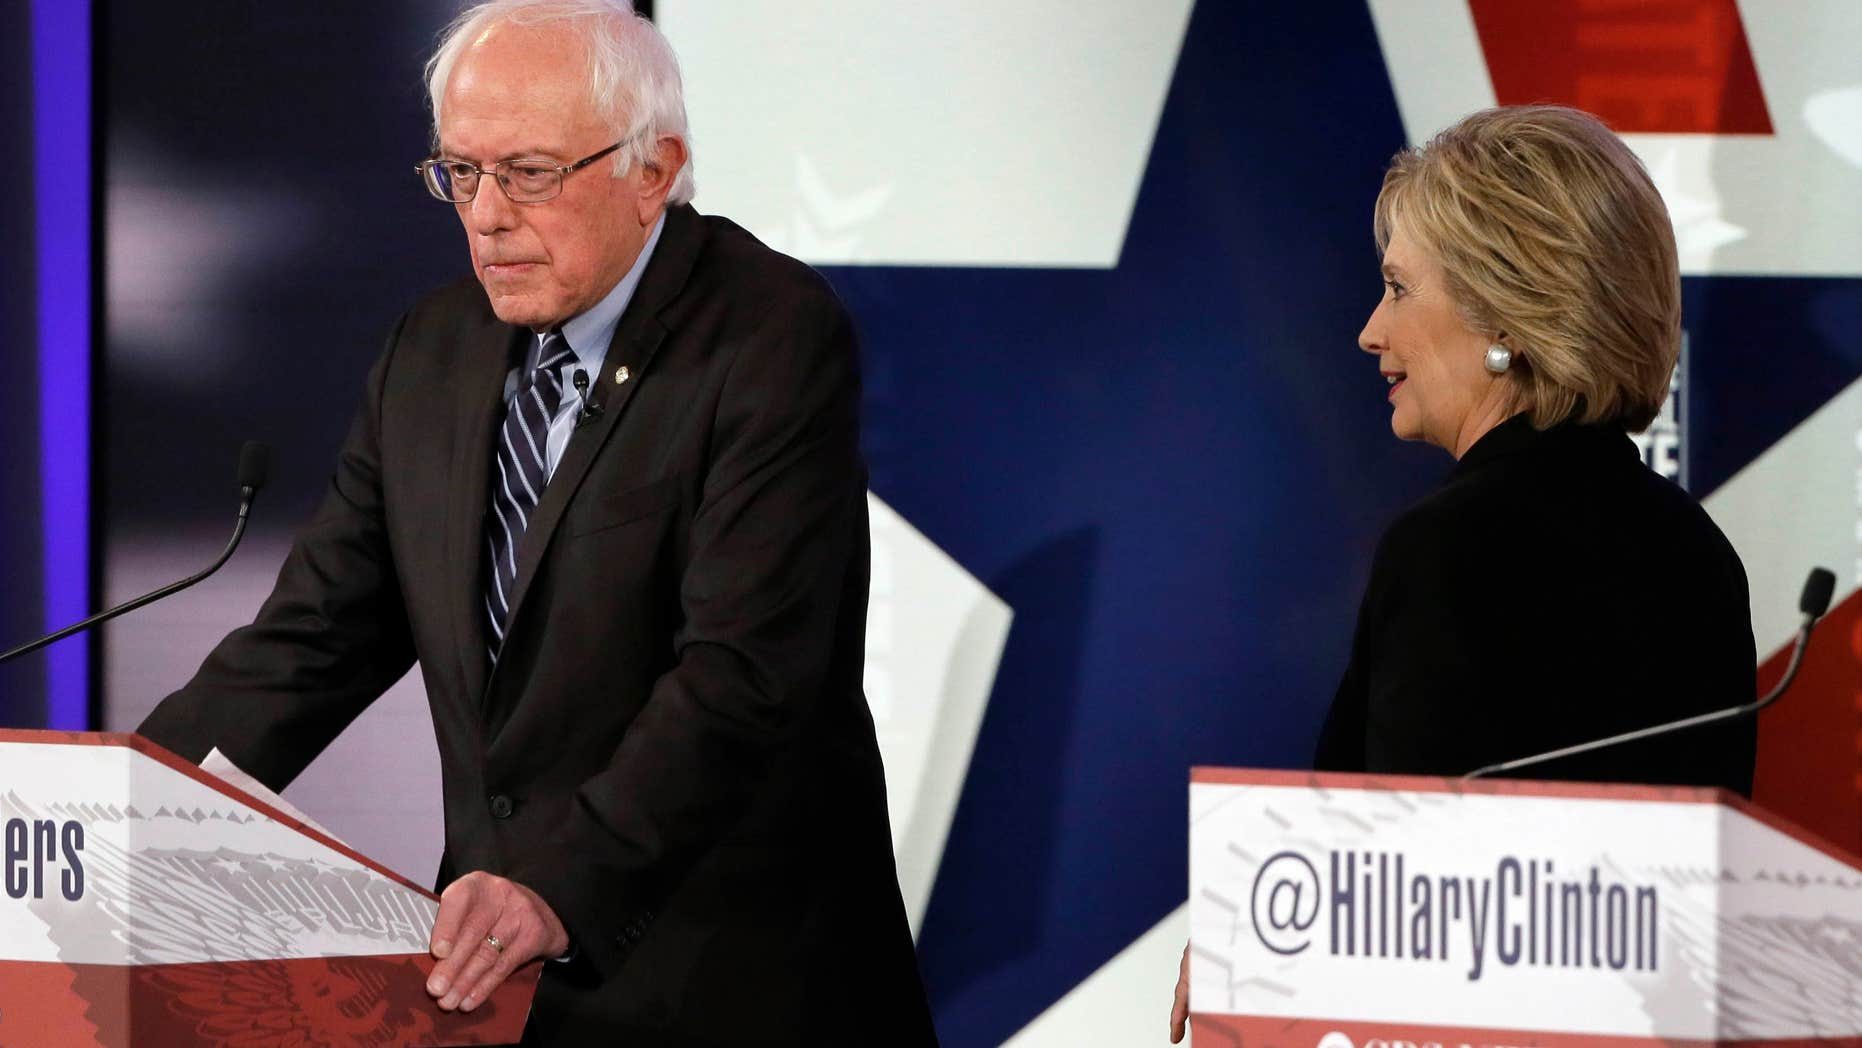 Nov. 14, 2015: Hillary Rodham Clinton, right, walks by Bernie Sanders during a commercial break at a Democratic presidential primary debate in Des Moines, Iowa.